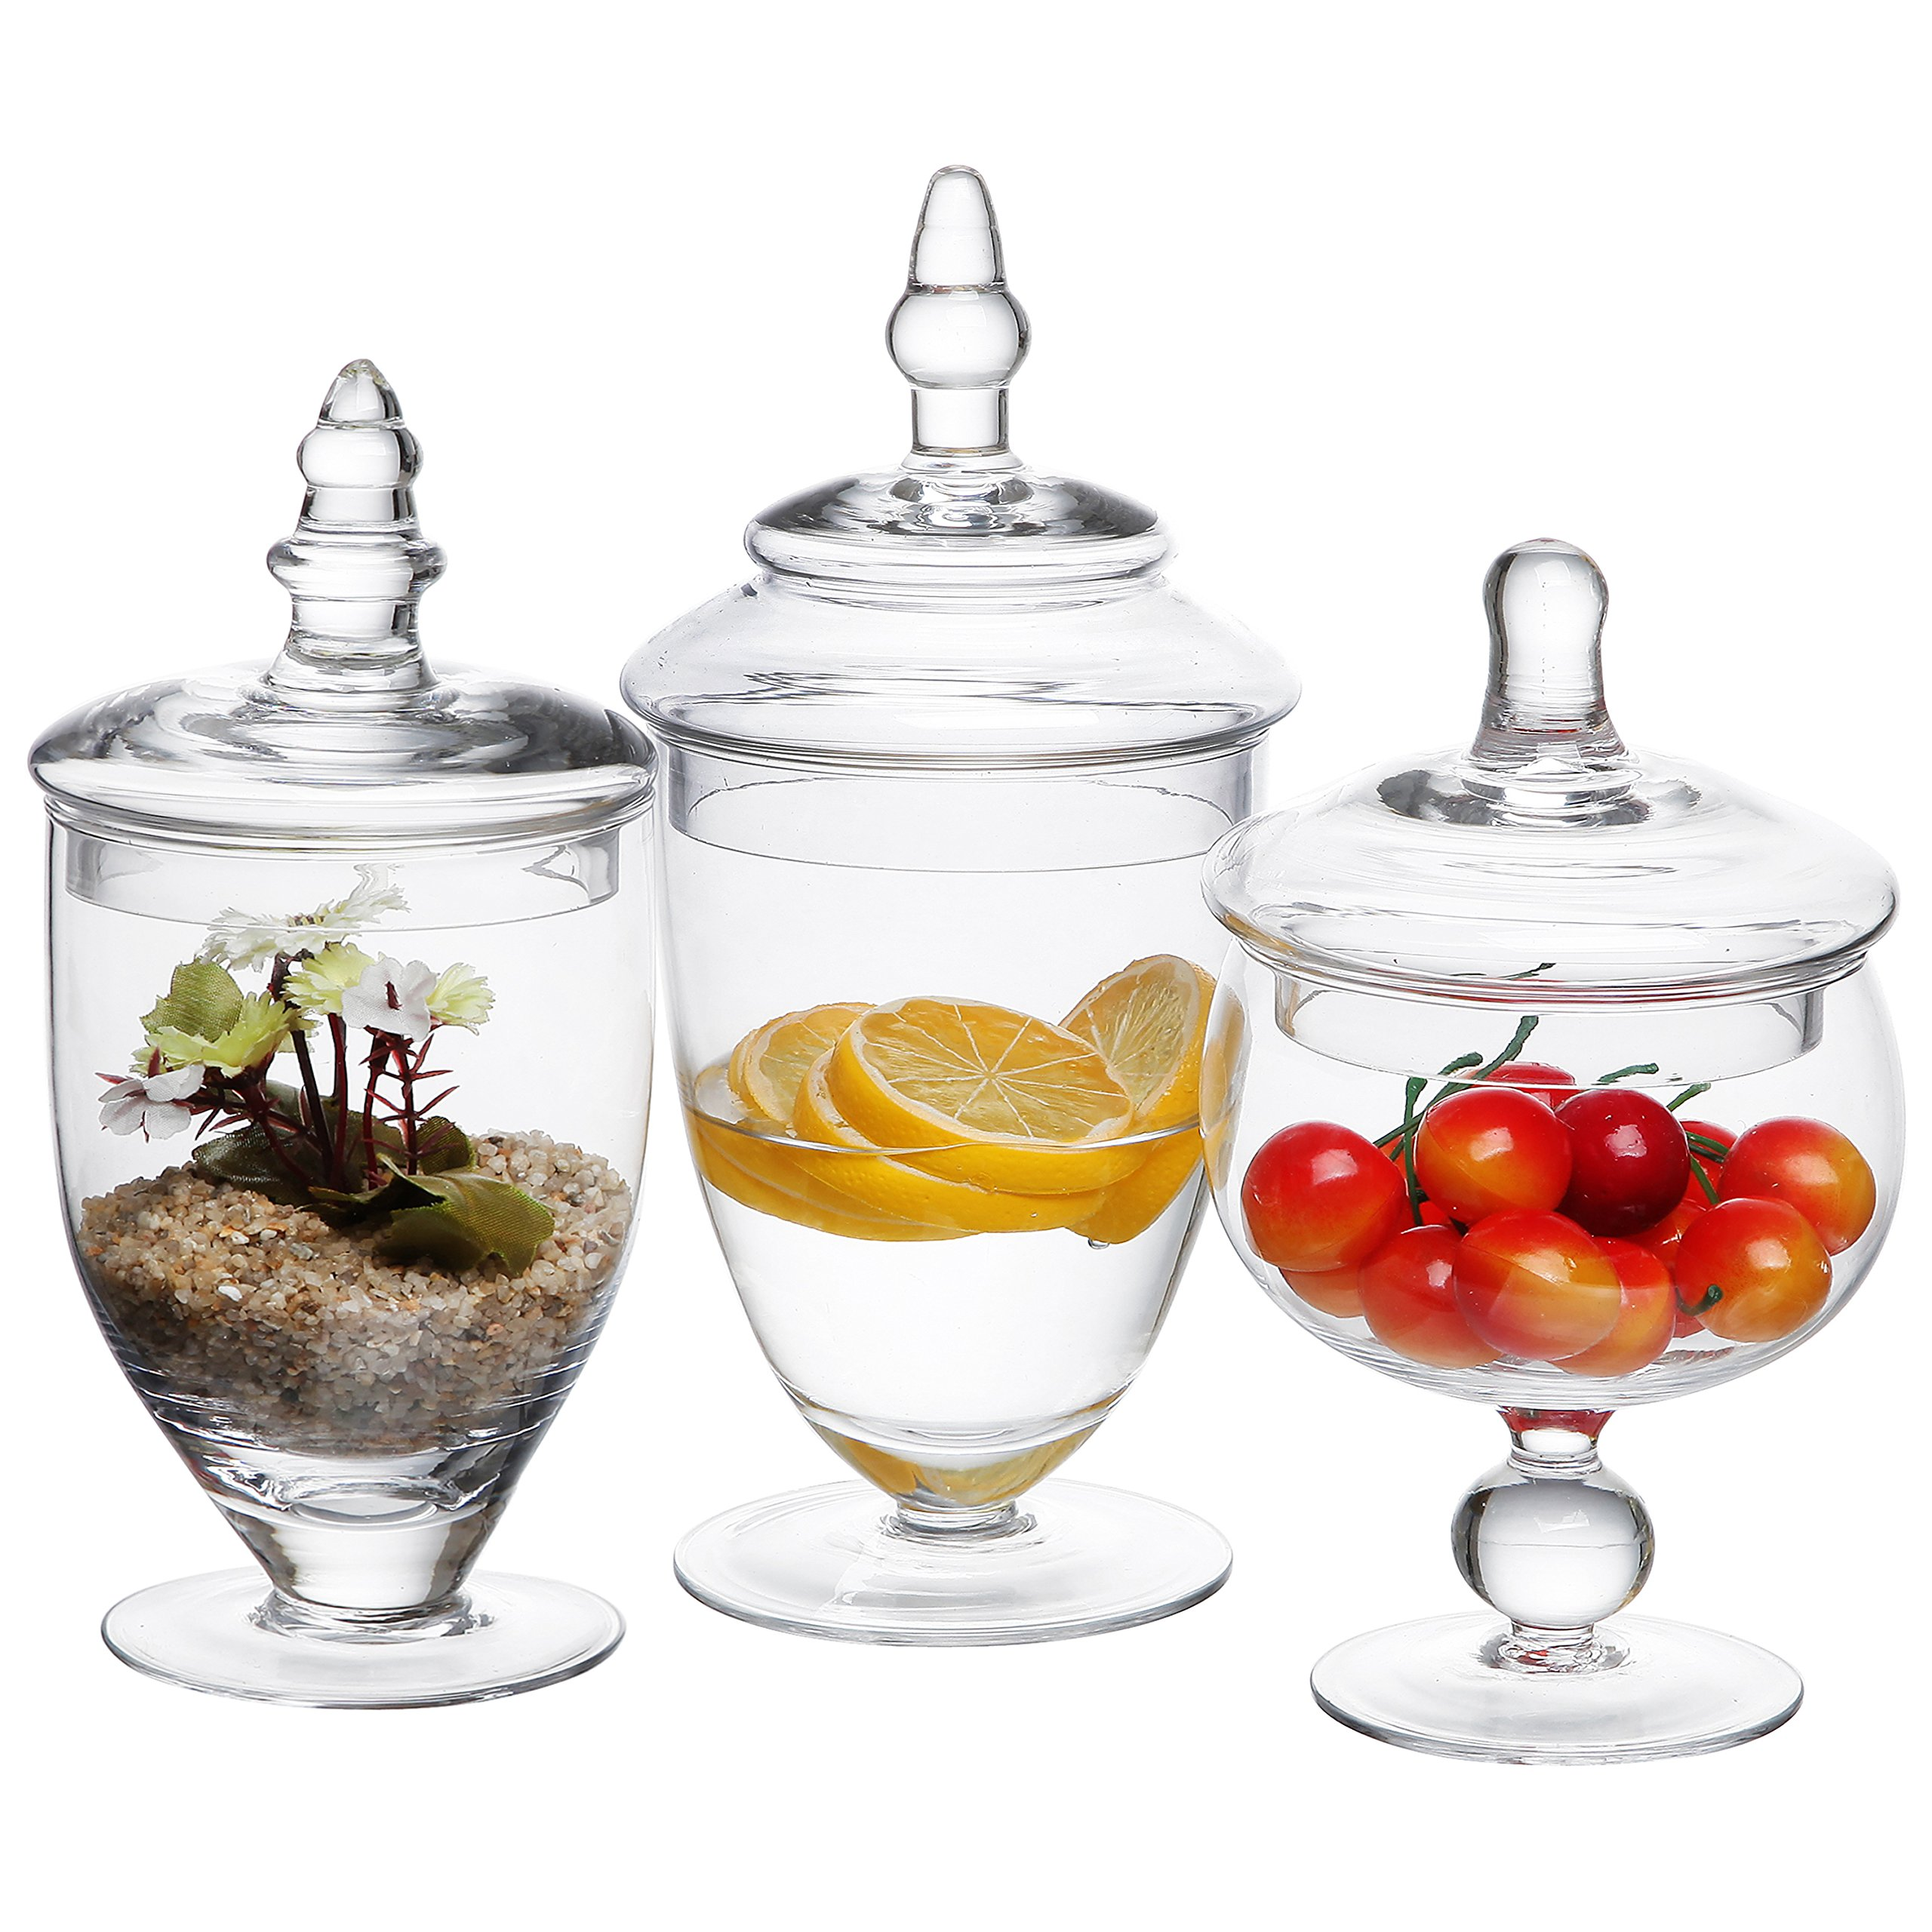 MyGift Small Clear Glass Apothecary Jars, Wedding Centerpiece, Candy Storage Bottles - 3 Piece by MyGift